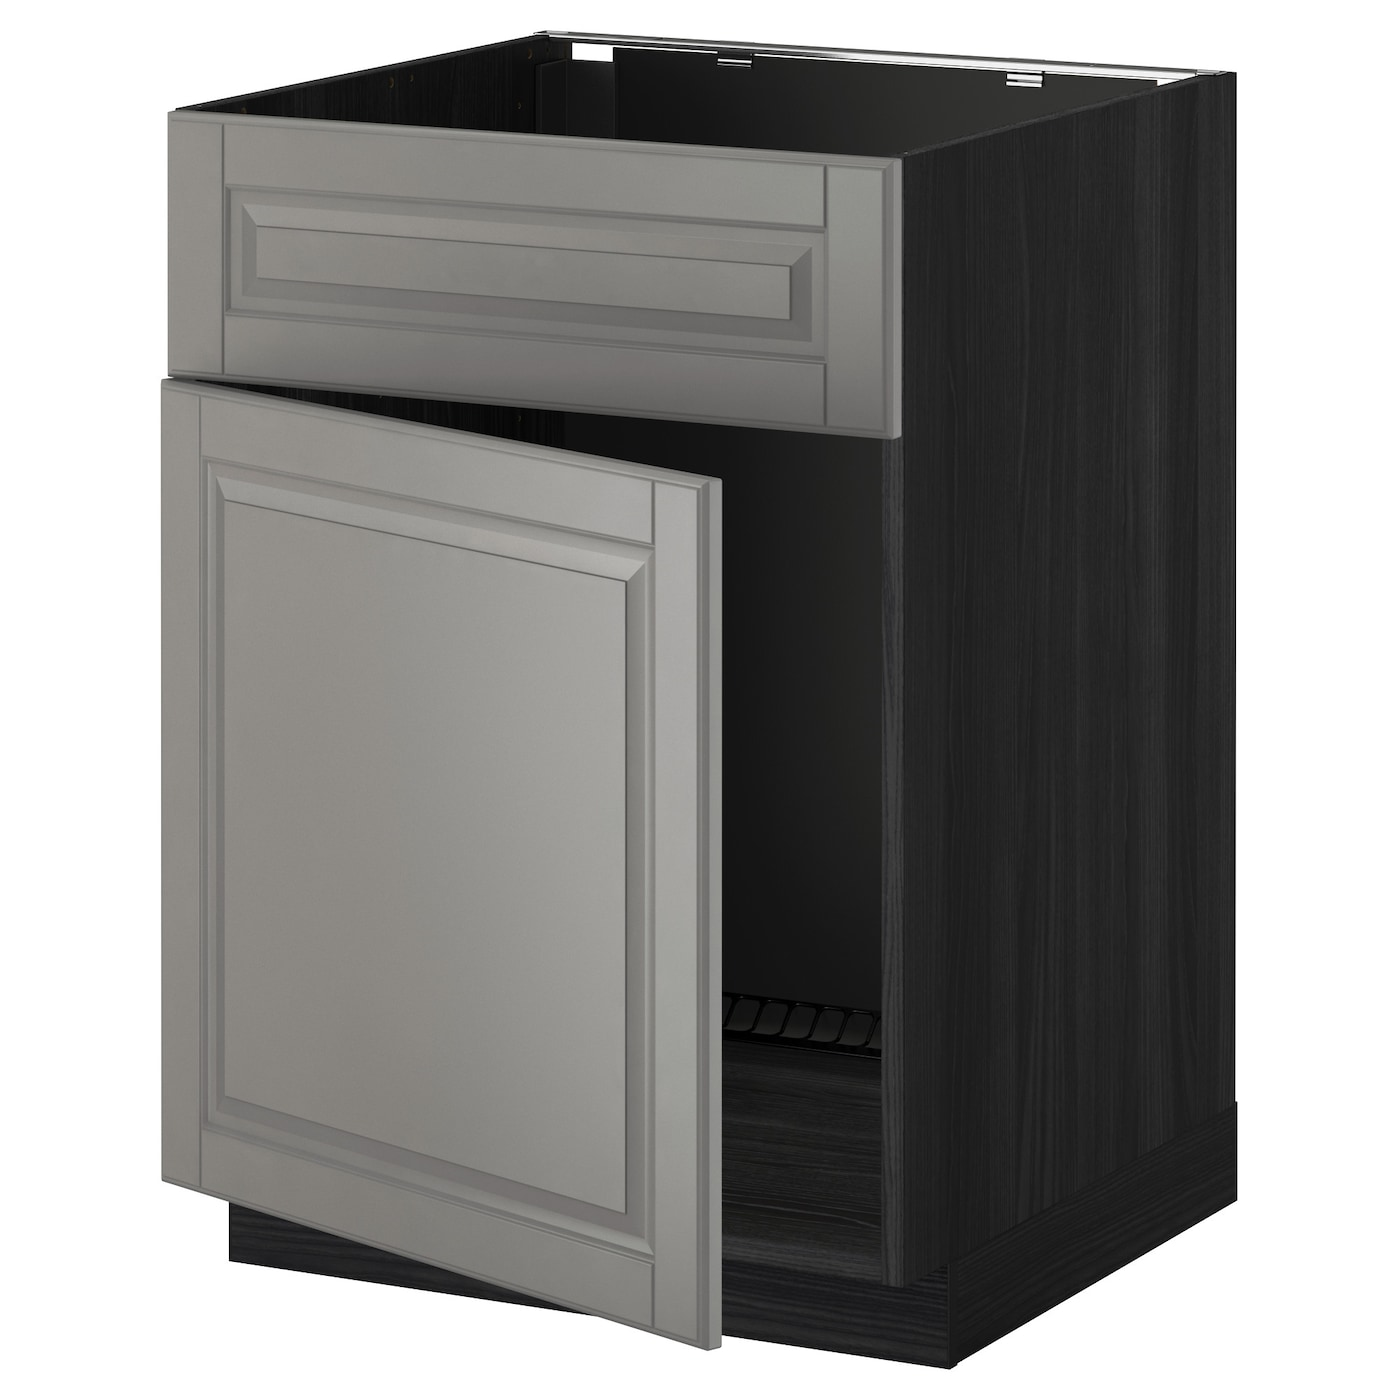 Metod base cabinet f sink w door front black bodbyn grey for Idea kitchen cabinet doors